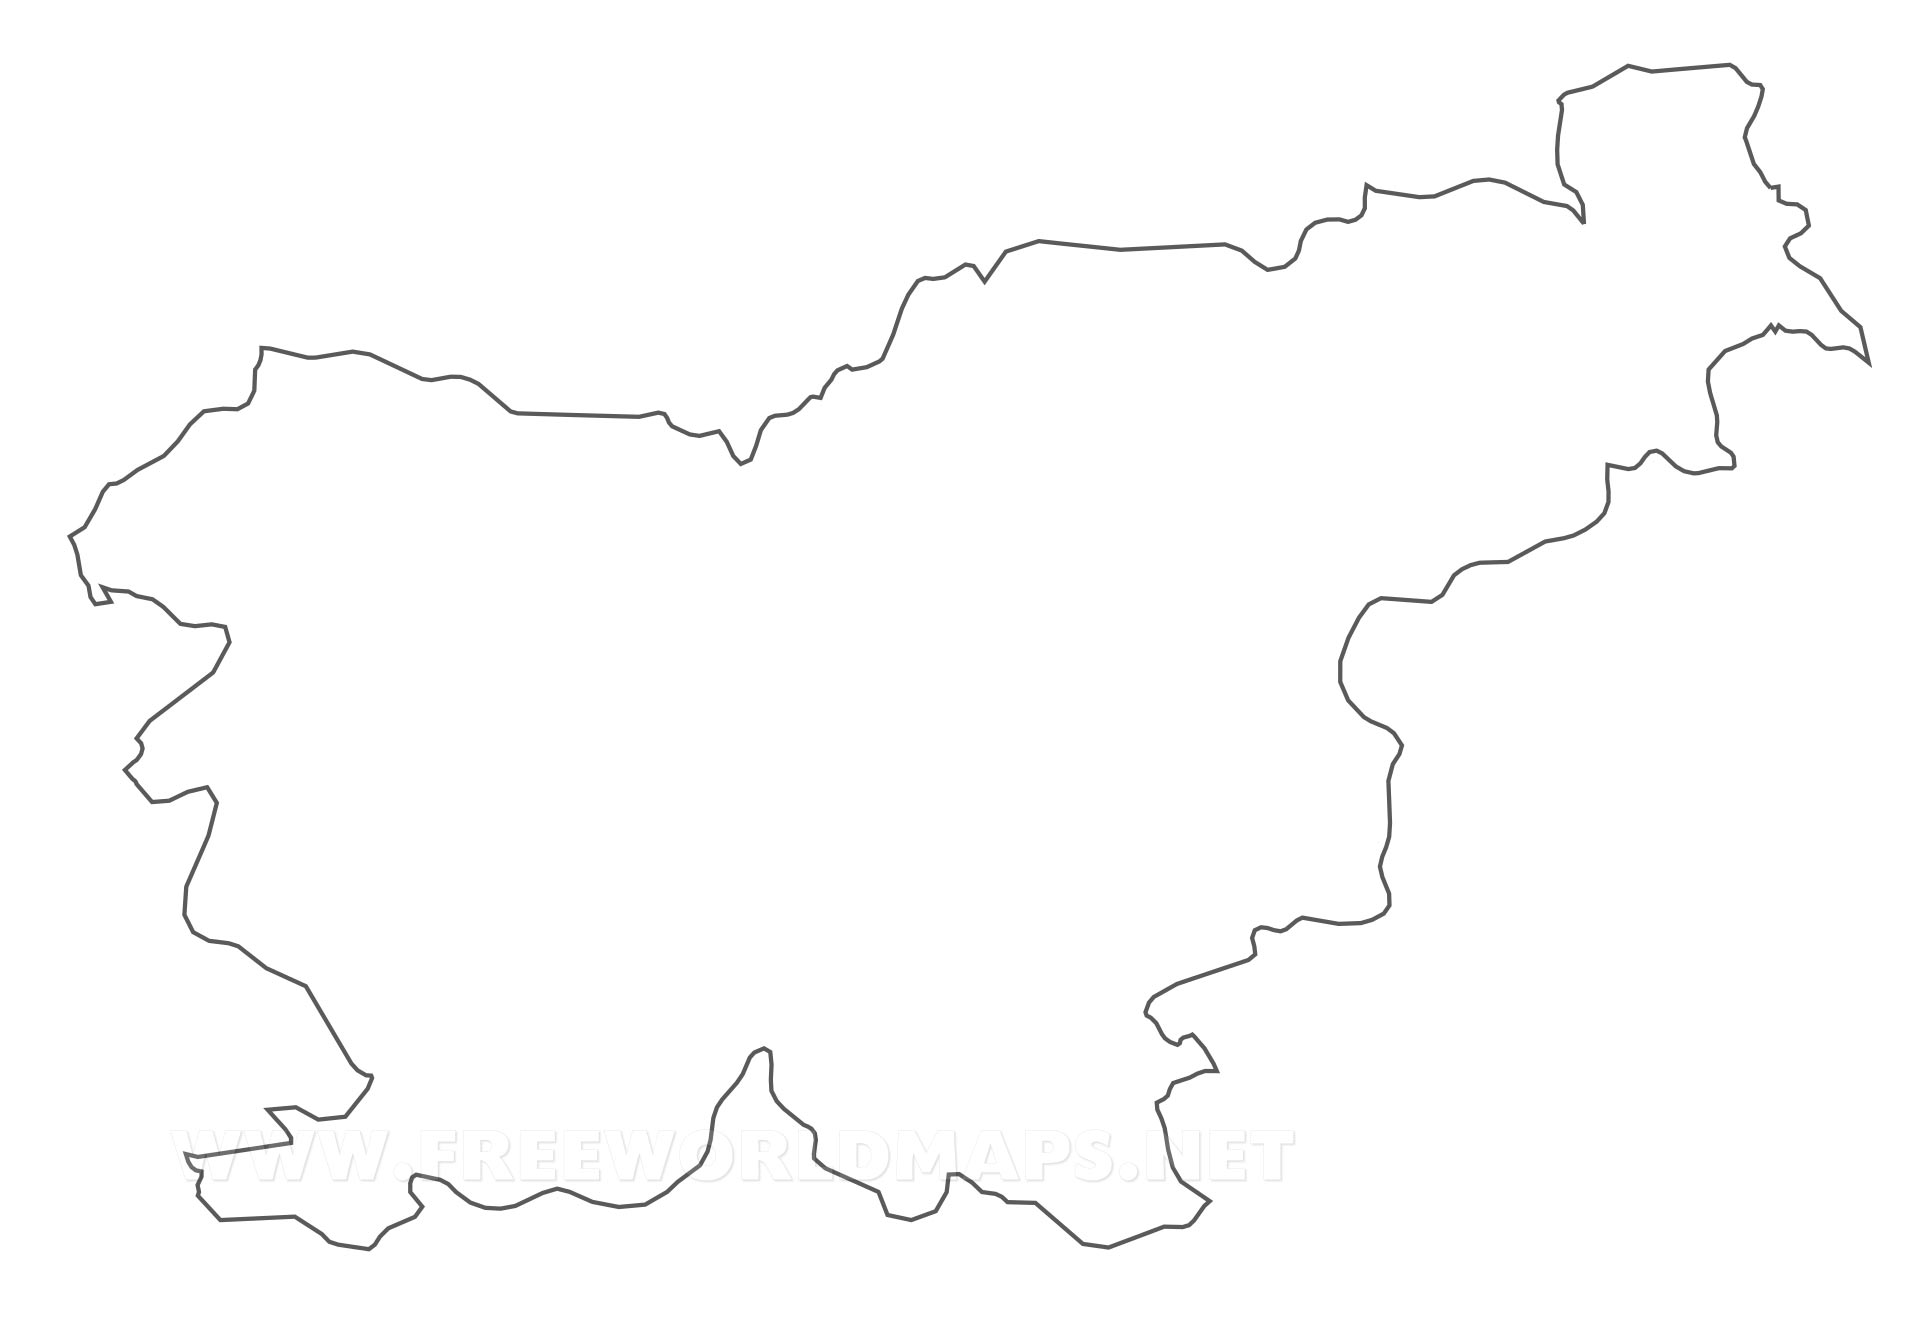 Slovenia Political Map - Slovenia map hd